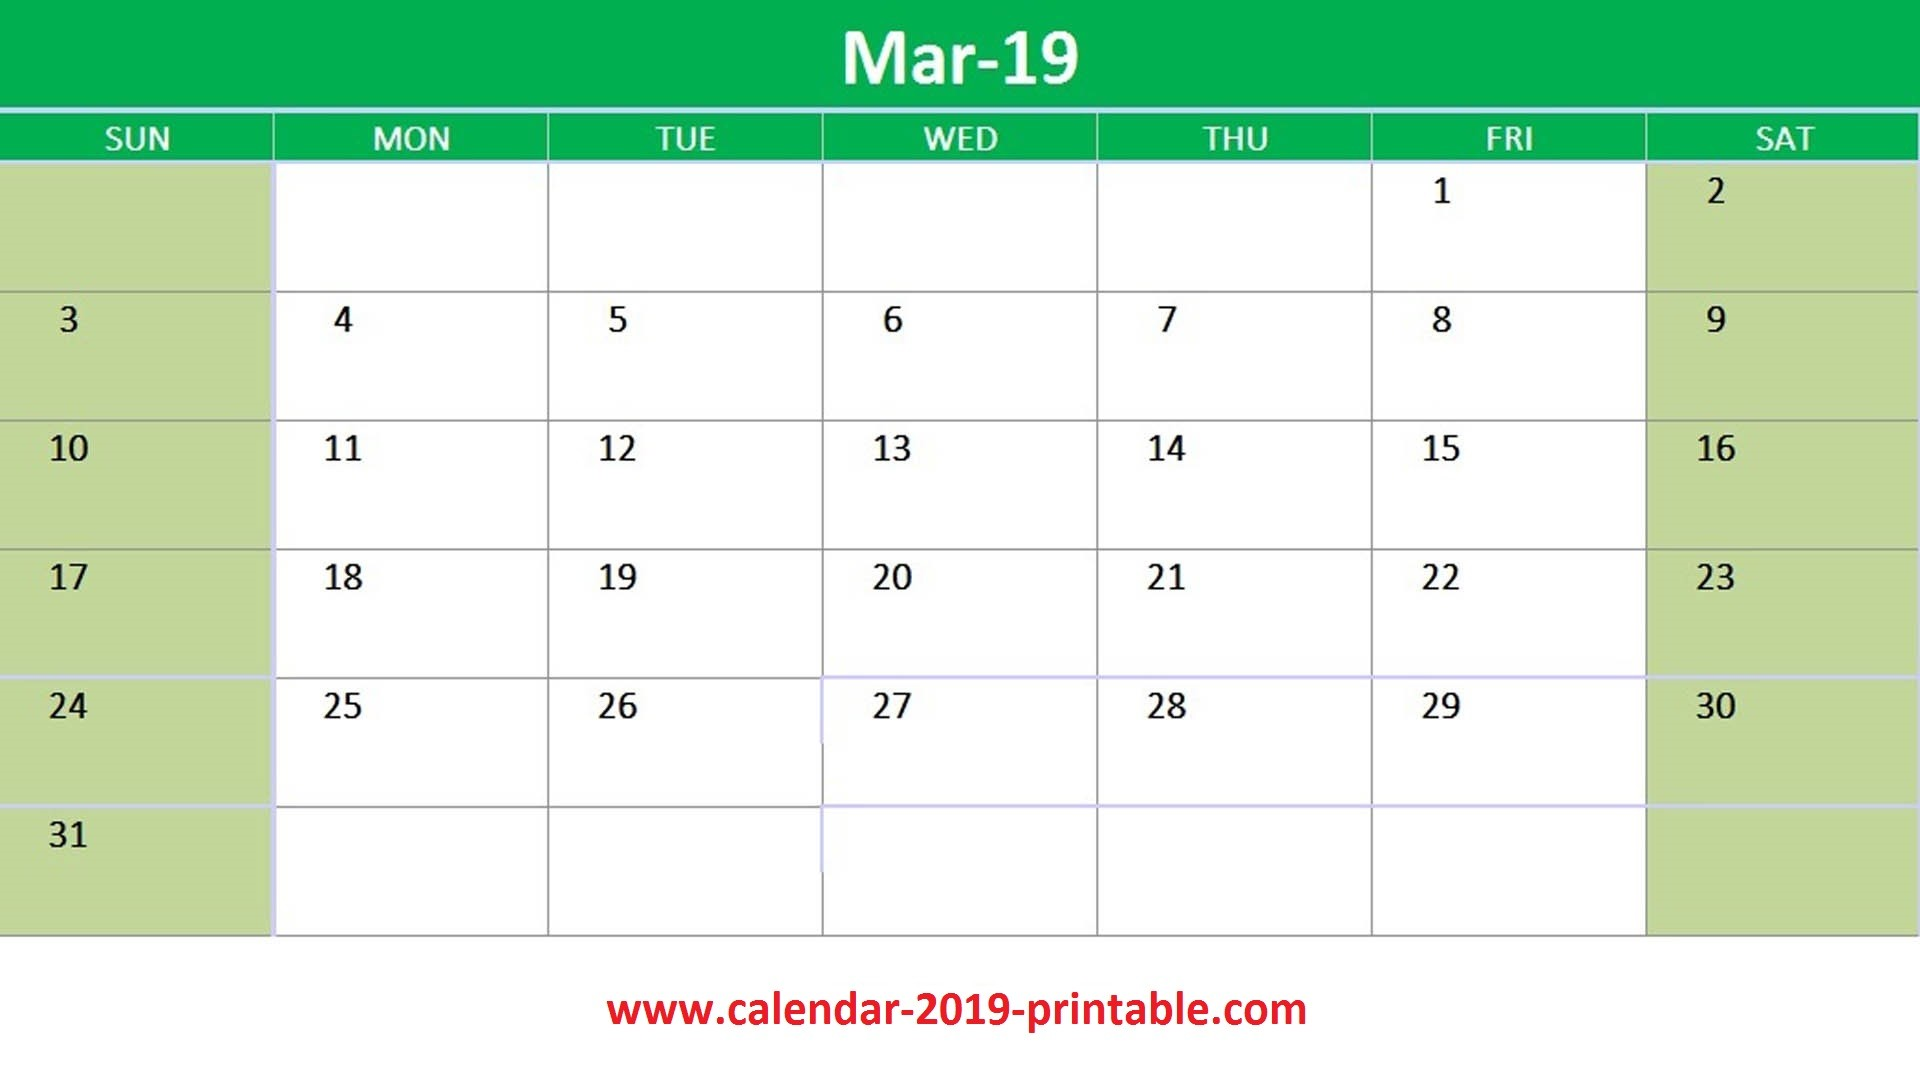 March Calendar 2019 Más Recientes March 2019 Calendar Printable Templates Of March Calendar 2019 Más Recientes March 2019 Wall Calendar Colorful Sketch Horizontal Template Letter